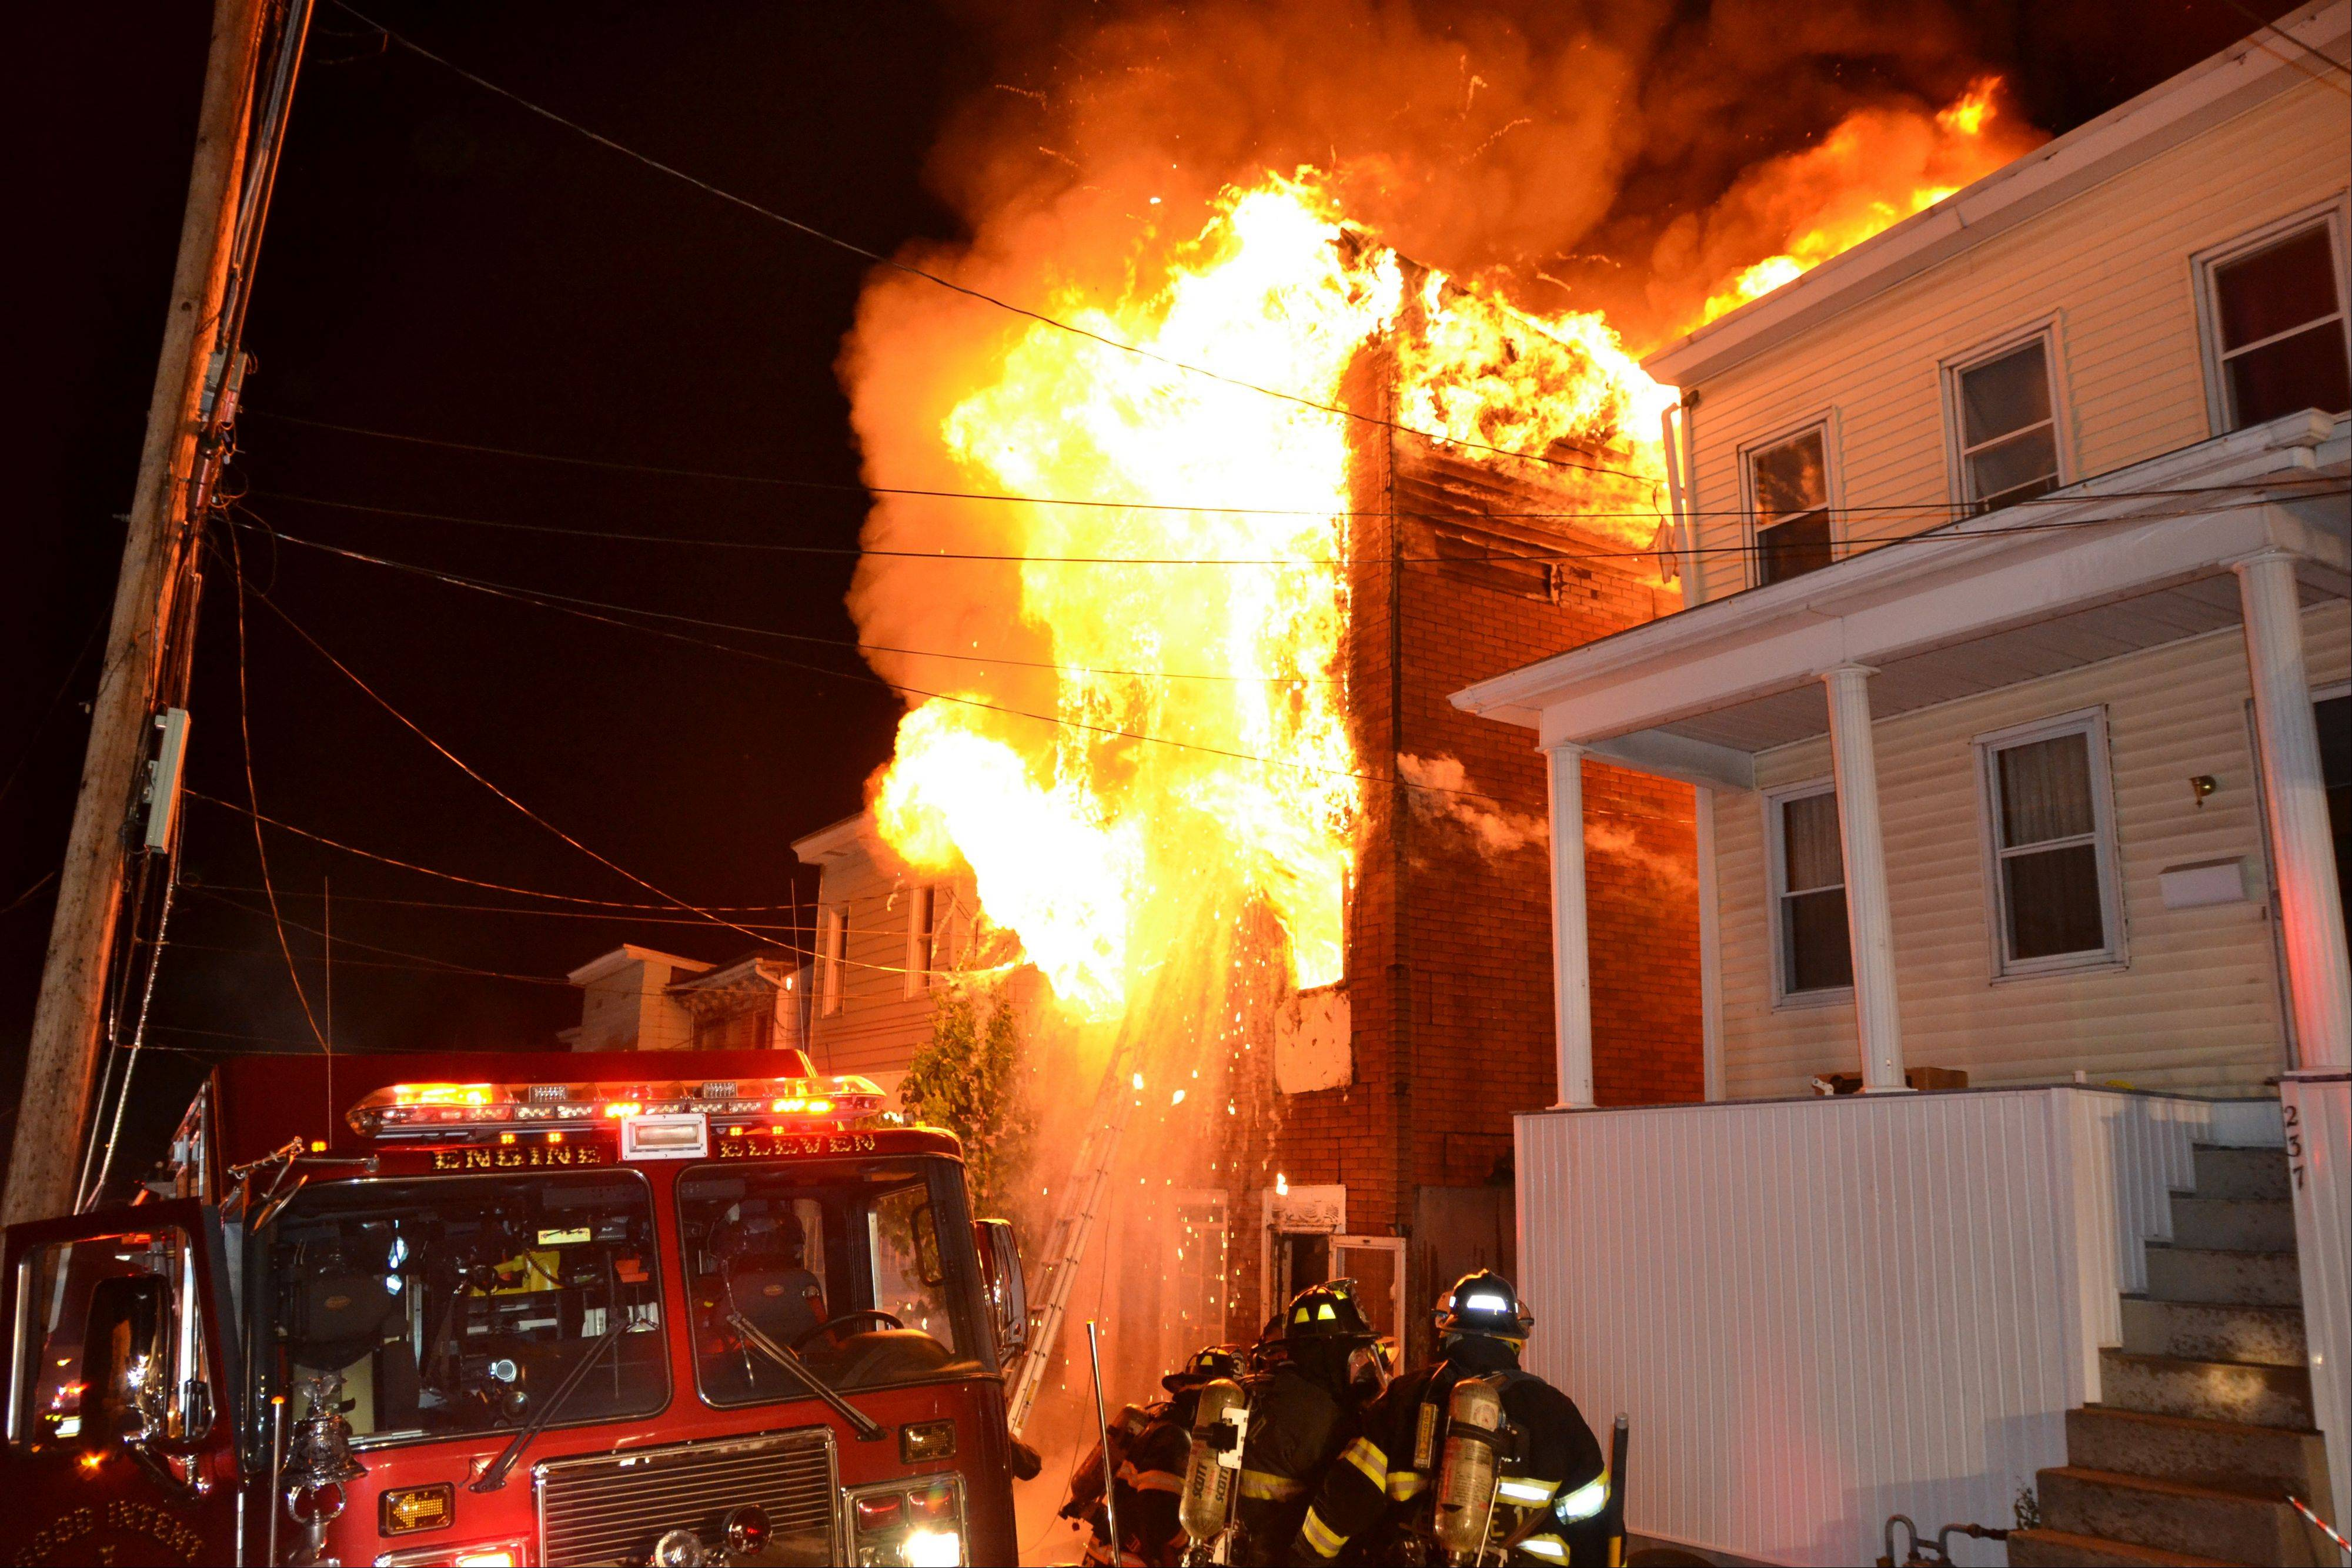 Firefighters battle an early-morning house fire that killed four children and two adults in Pottsville, Pa., Monday. The blaze broke out around 11:55 p.m. Sunday at the single-fam